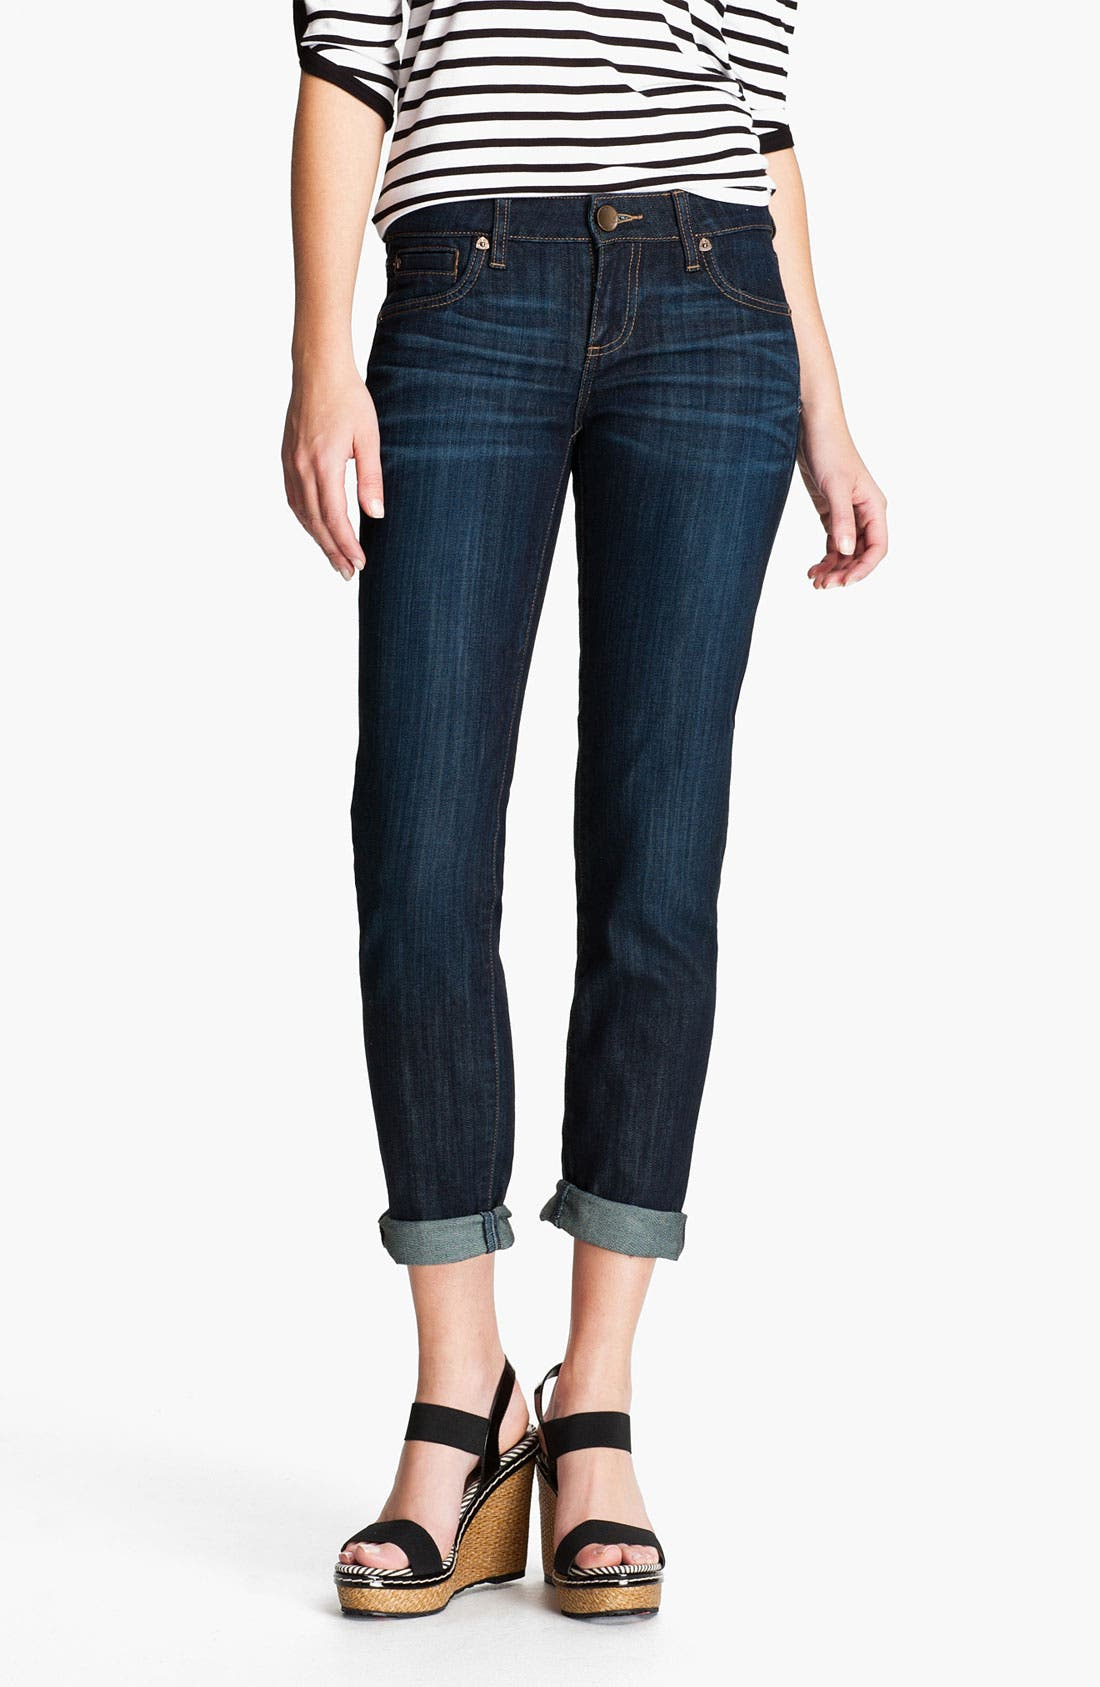 Main Image - KUT from the Kloth 'Catherine' Boyfriend Jeans (Petite)